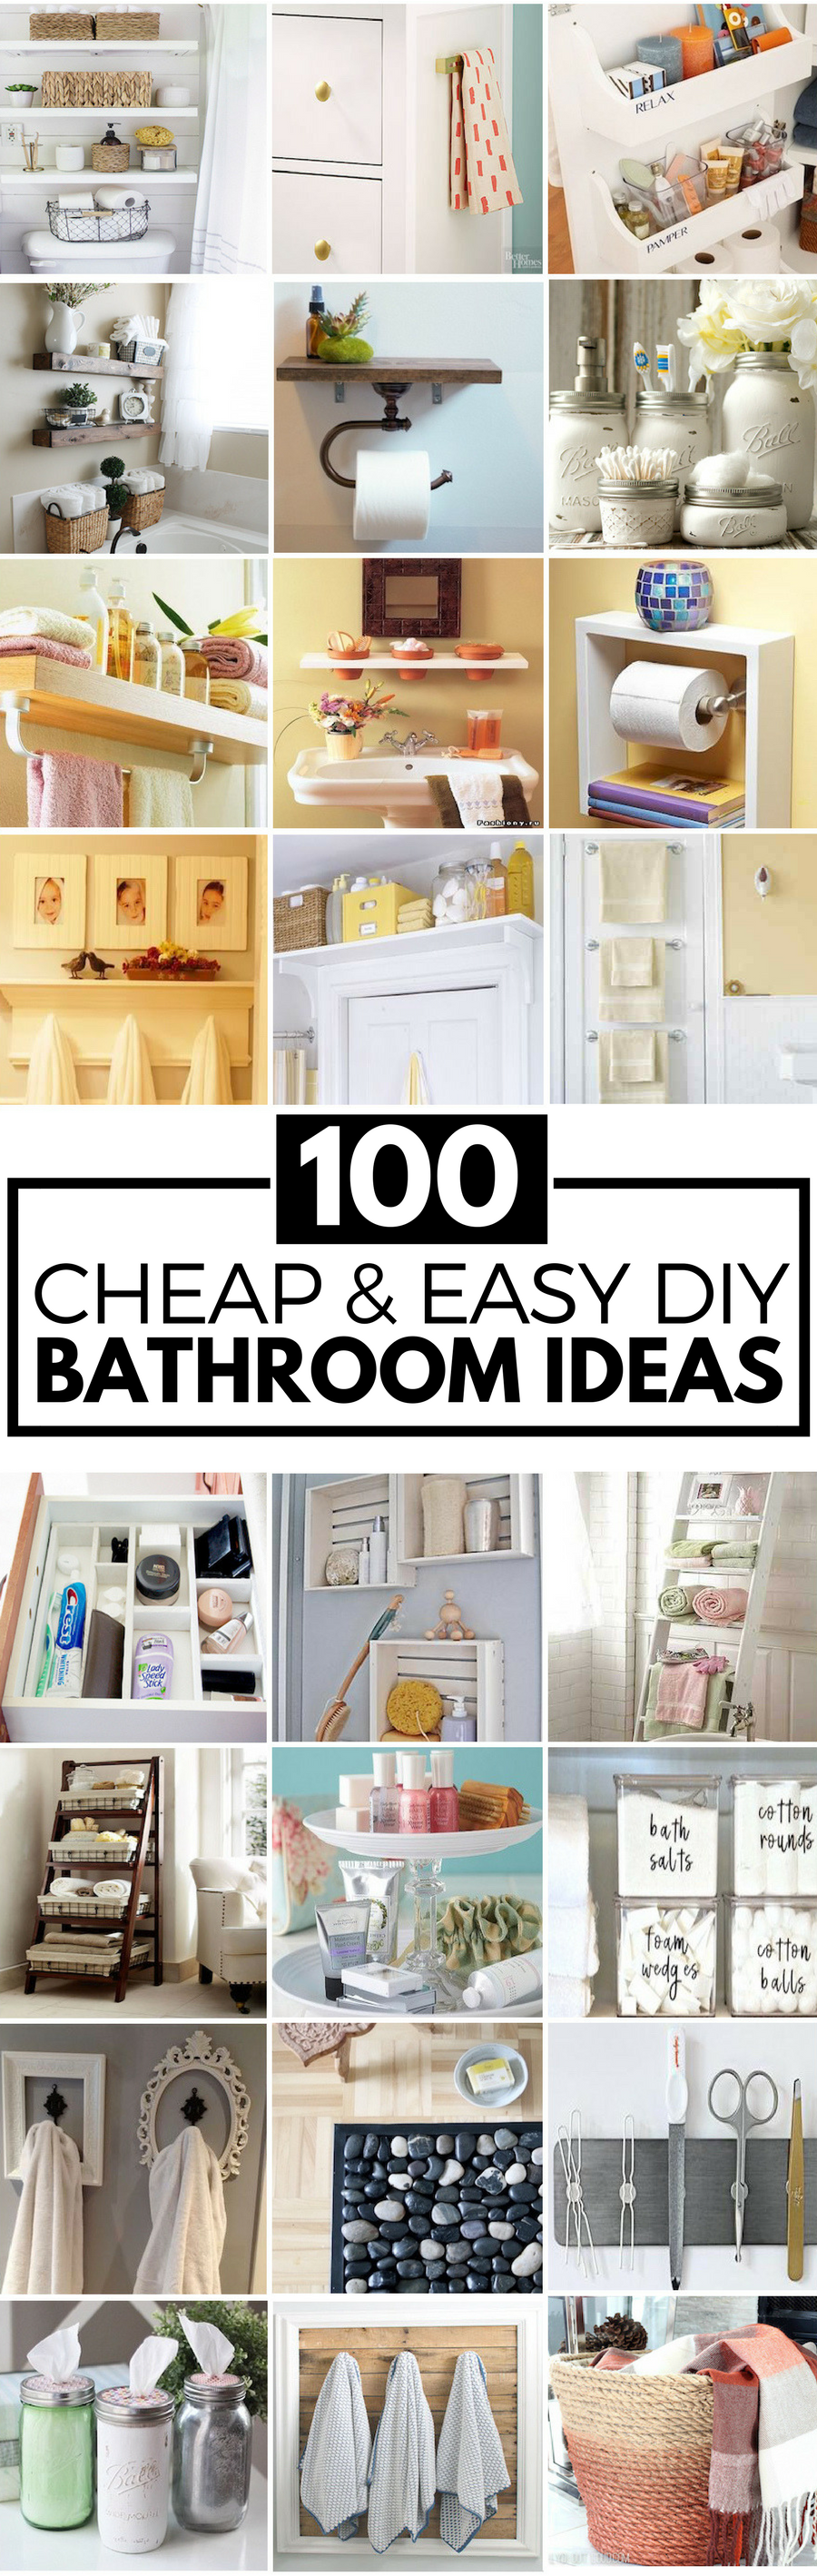 100 cheap and easy diy bathroom ideas prudent penny pincher for Bathroom designs diy